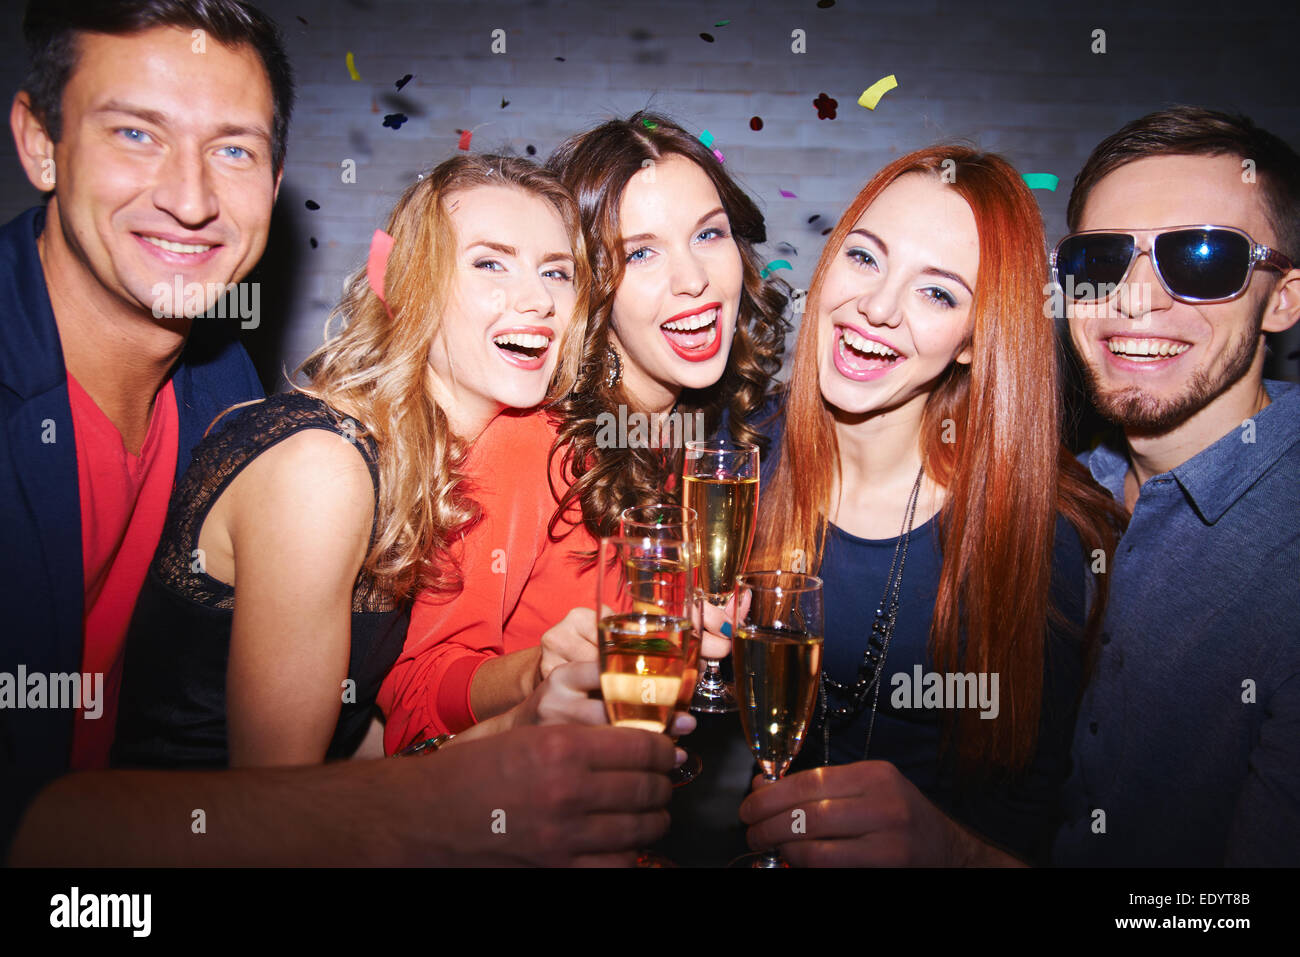 Amis extatique avec champagne having party Photo Stock